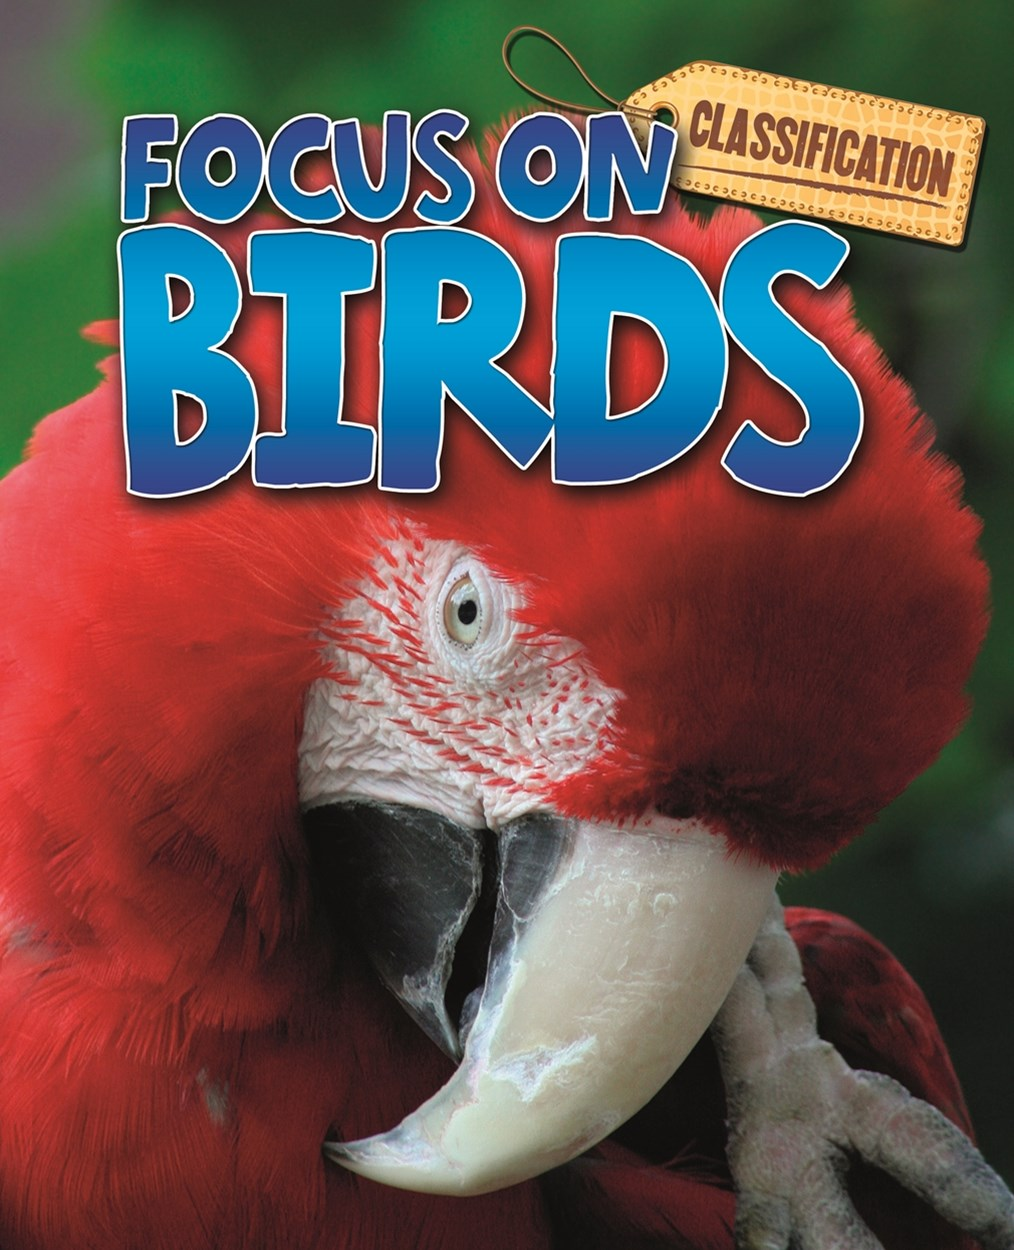 Classification: Focus on: Birds